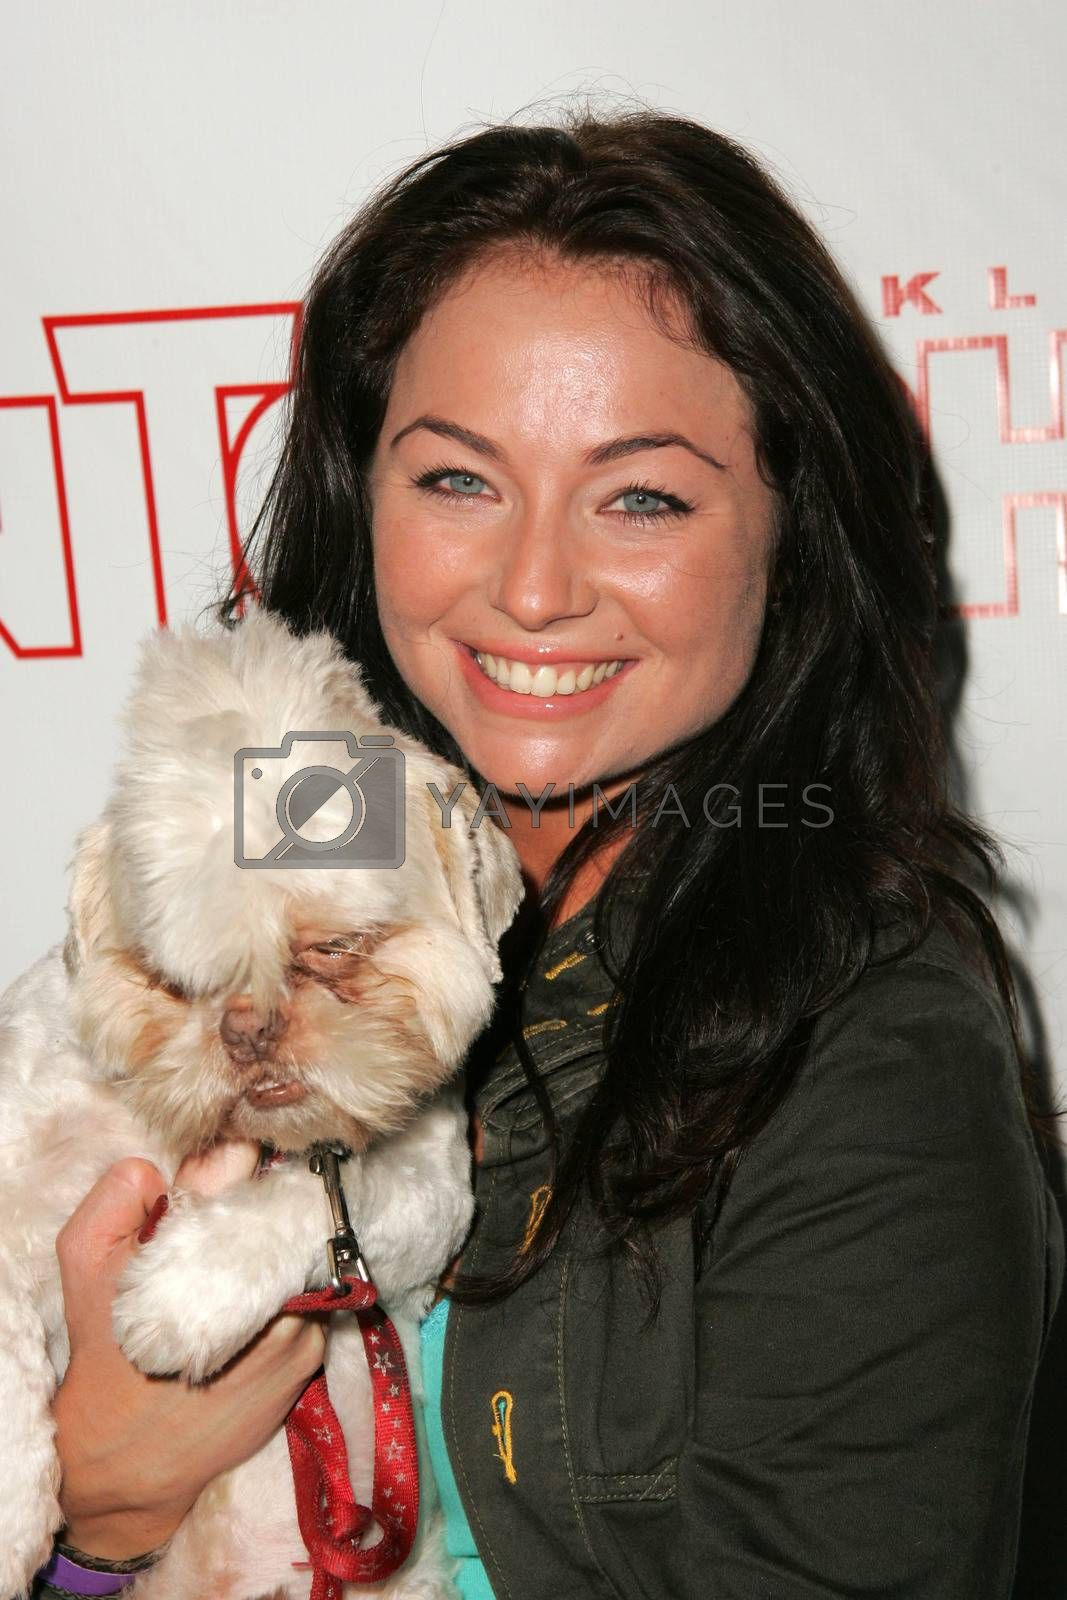 Lindsey Labrum and Sumo at the In Touch Presents Pets And Their Stars Party, Cabana Club, Hollywood, CA 09-21-05